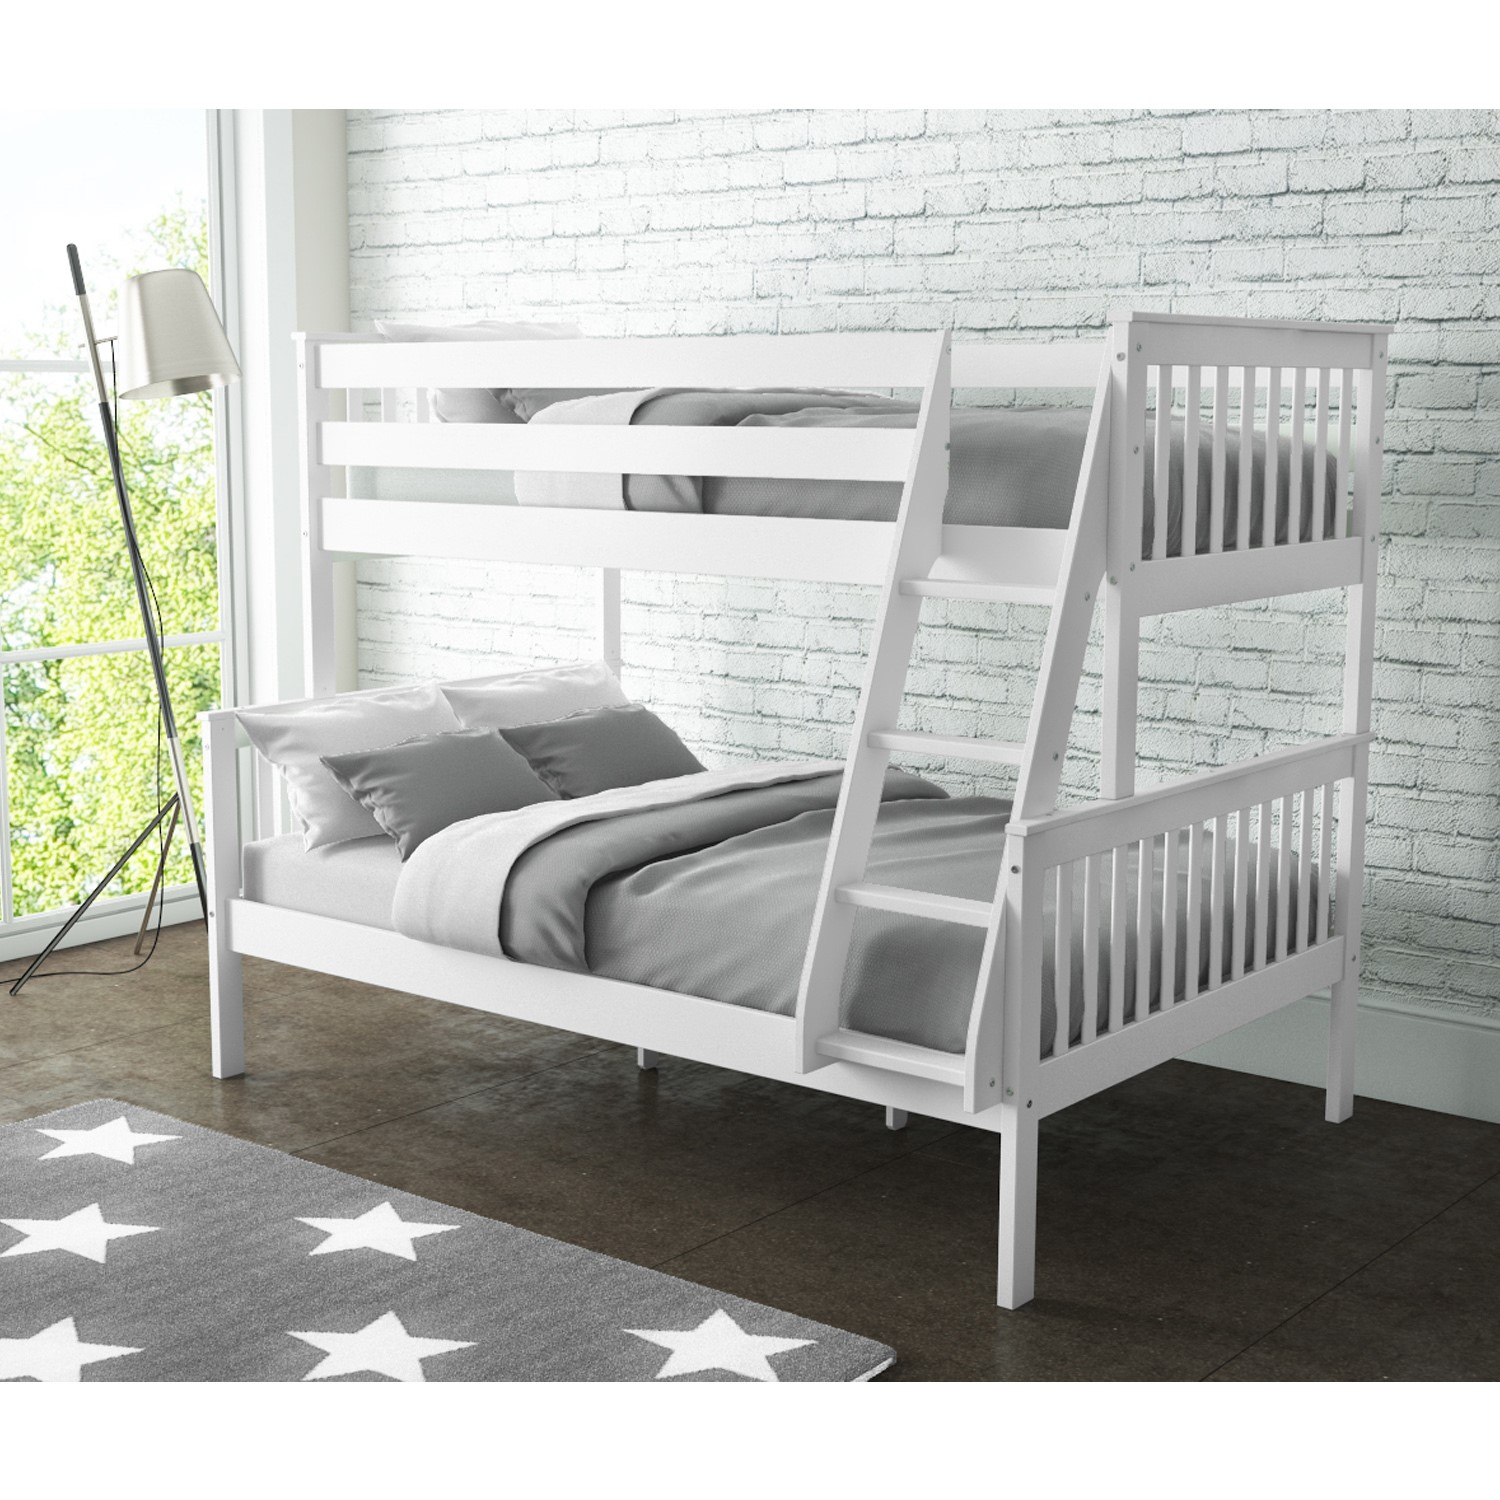 Oxf005 Oxford Triple Bunk Bed In Cream Buy It Direct